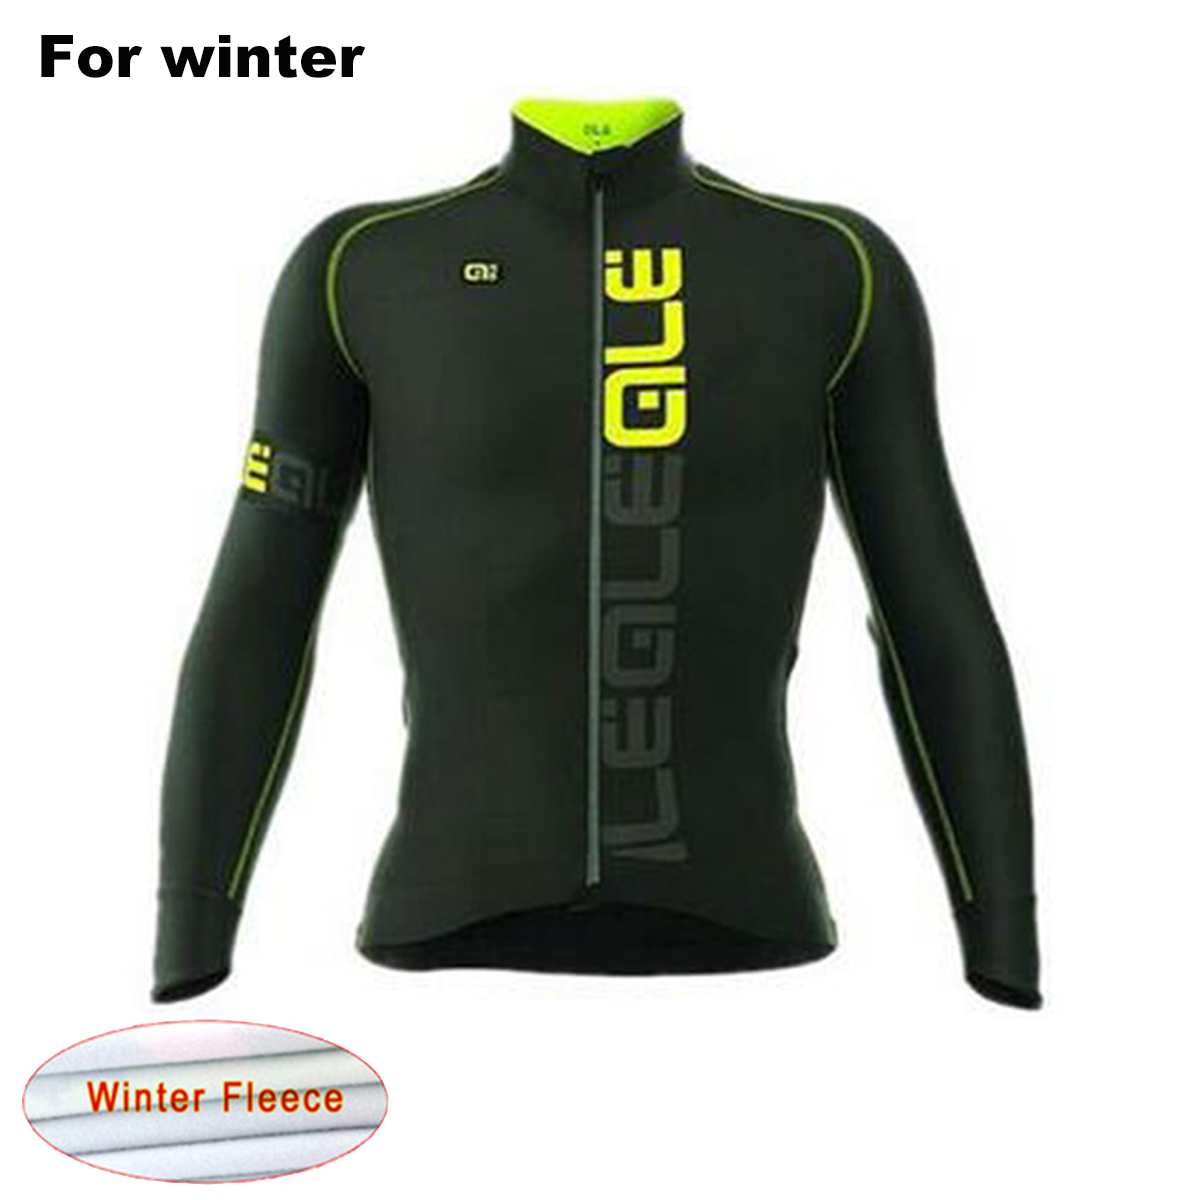 2017 Ale New Men`s Thermal Fleece Long Sleeves Warm Team Winter MTB Sportswear Ropa Ciclismo Maillot Cycling Jersey Bike Clothes